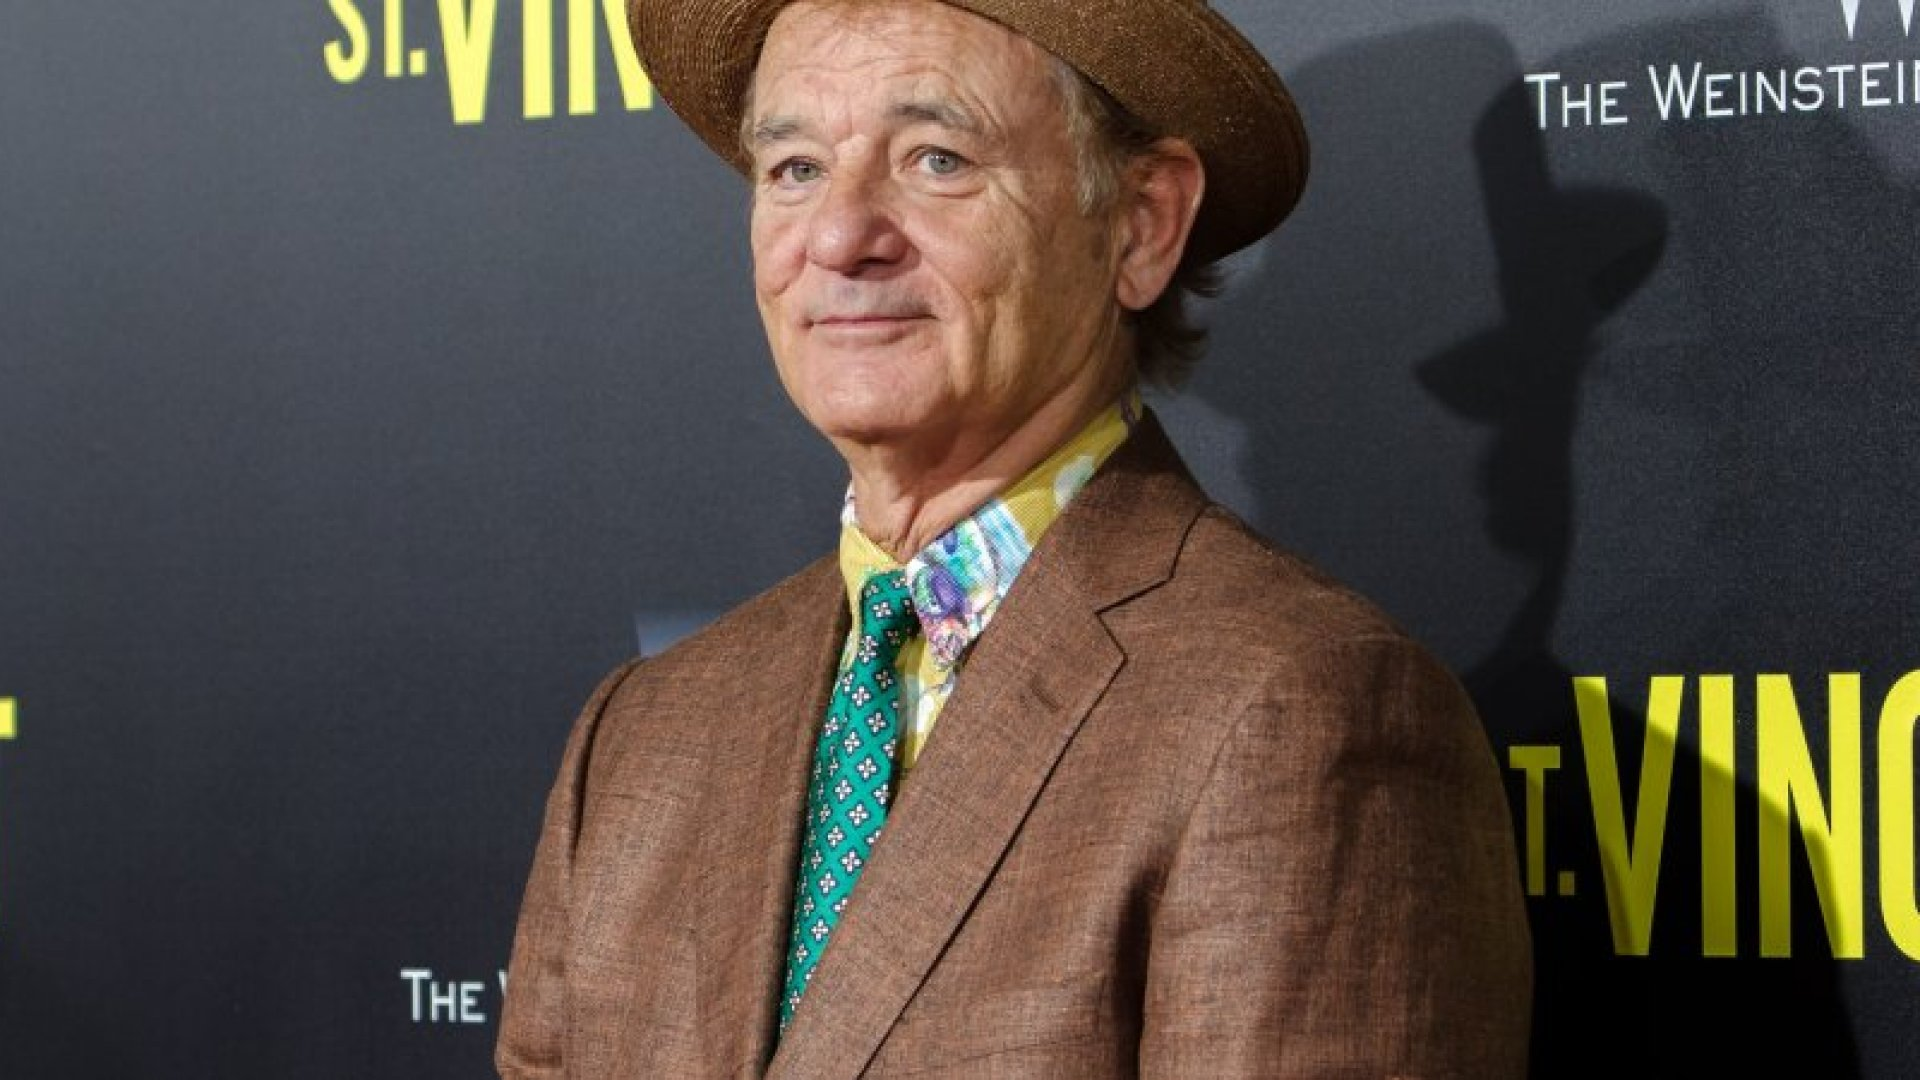 Actor Bill Murray attends the New York Premiere of 'St. Vincent' at the Ziegfeld Theater on October 6, 2014 in New York City.  (Photo by Mike Pont/FilmMagic)